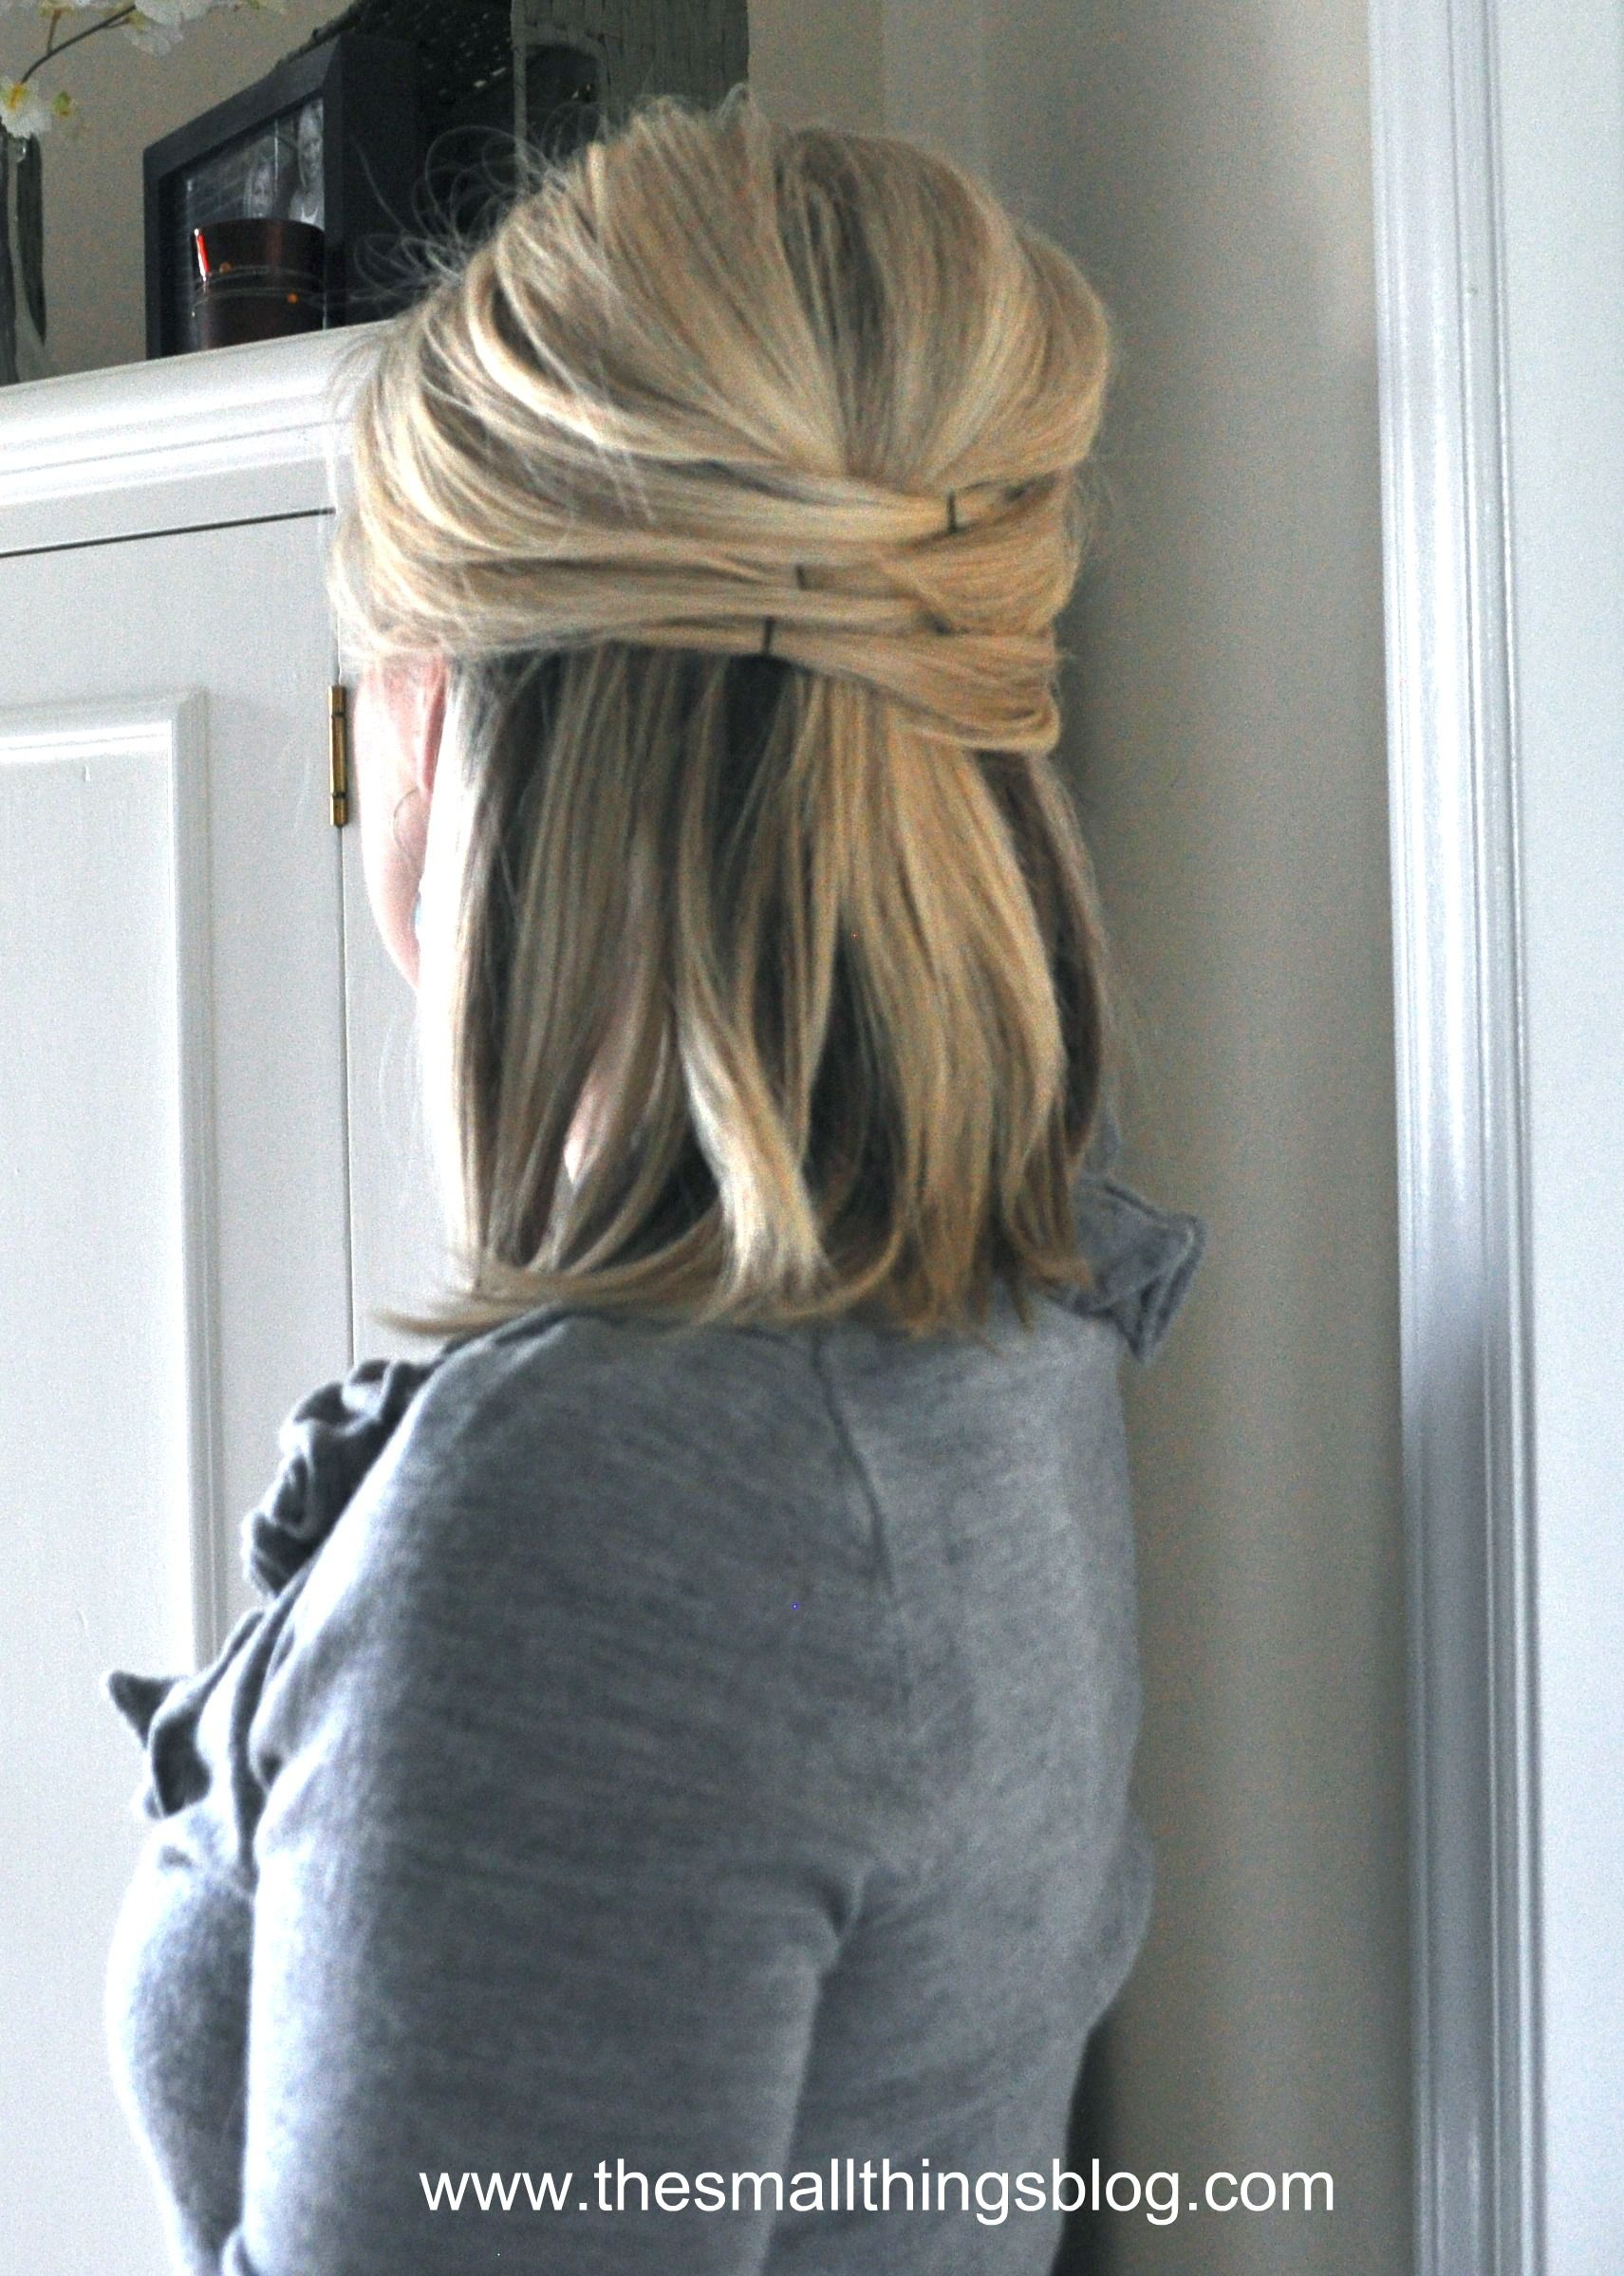 Half Up Hairstyles Short Hair Another Blog Another Blog Hair Styles Long Hair Styles Hair Lengths